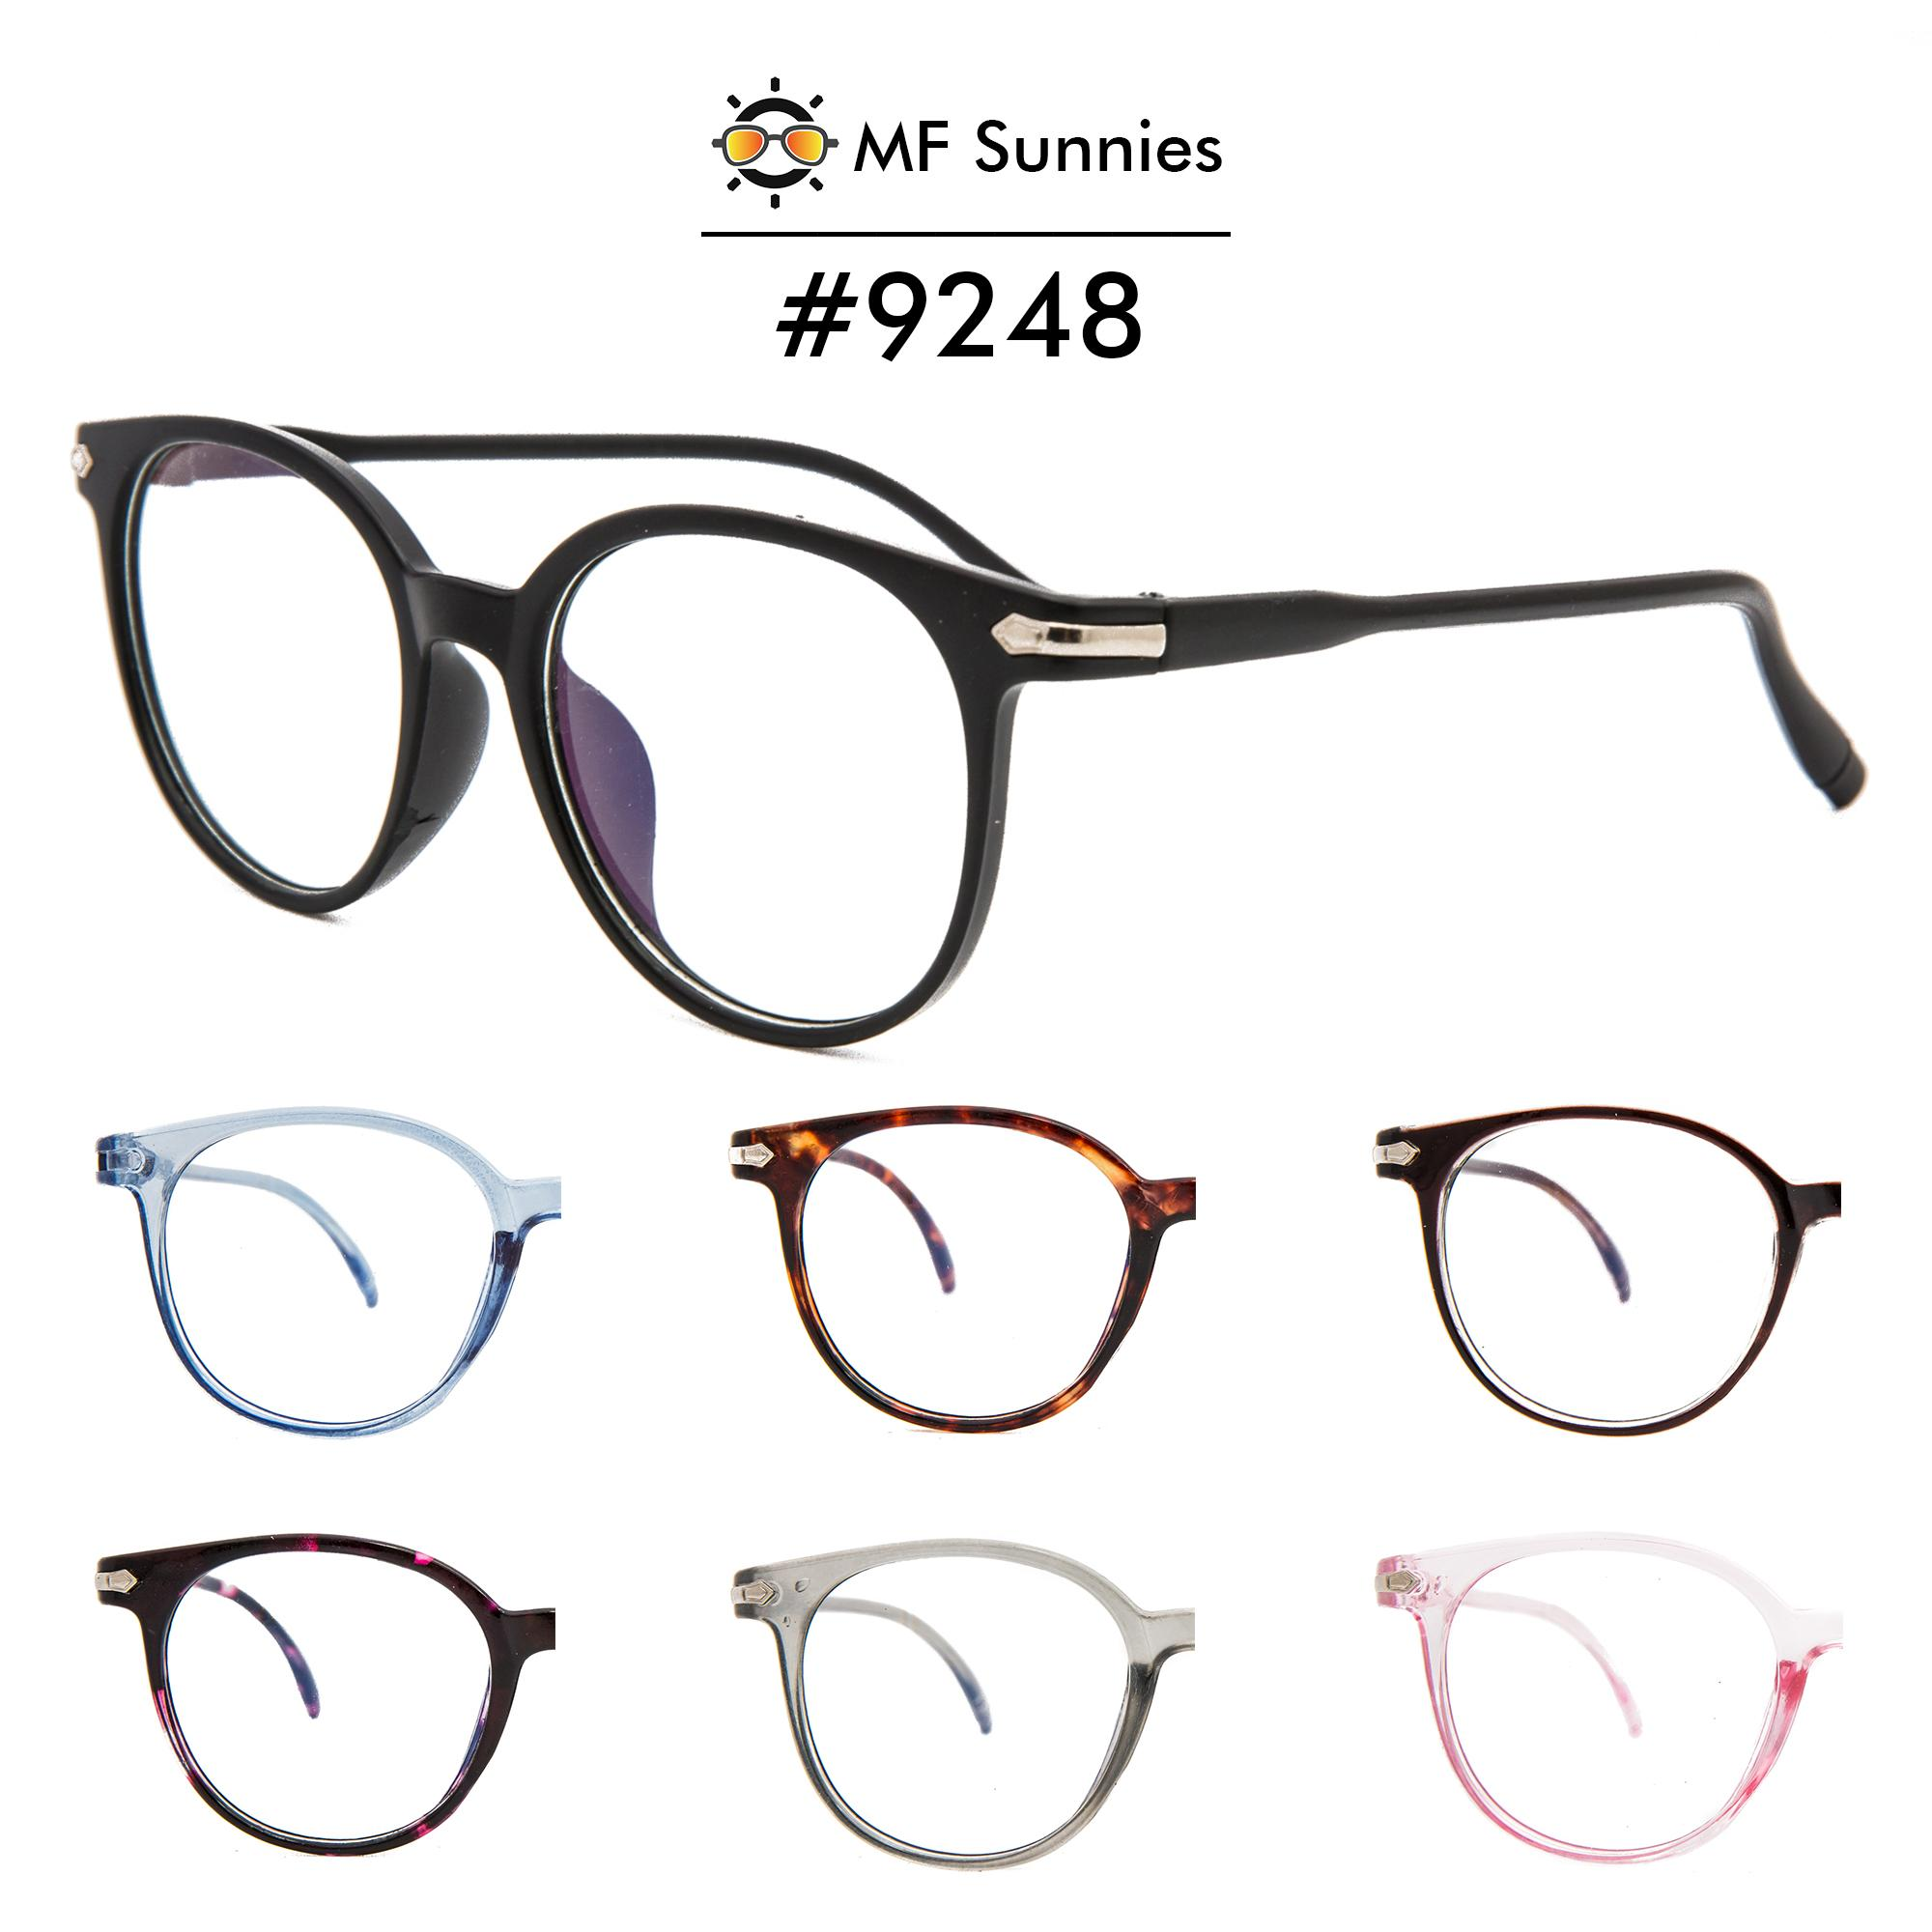 c3c6eb31aa46 MFSunnies Computer Anti-Radiation / Anti-Blue Light Flexible Frame Fashion  Eyewear #9248